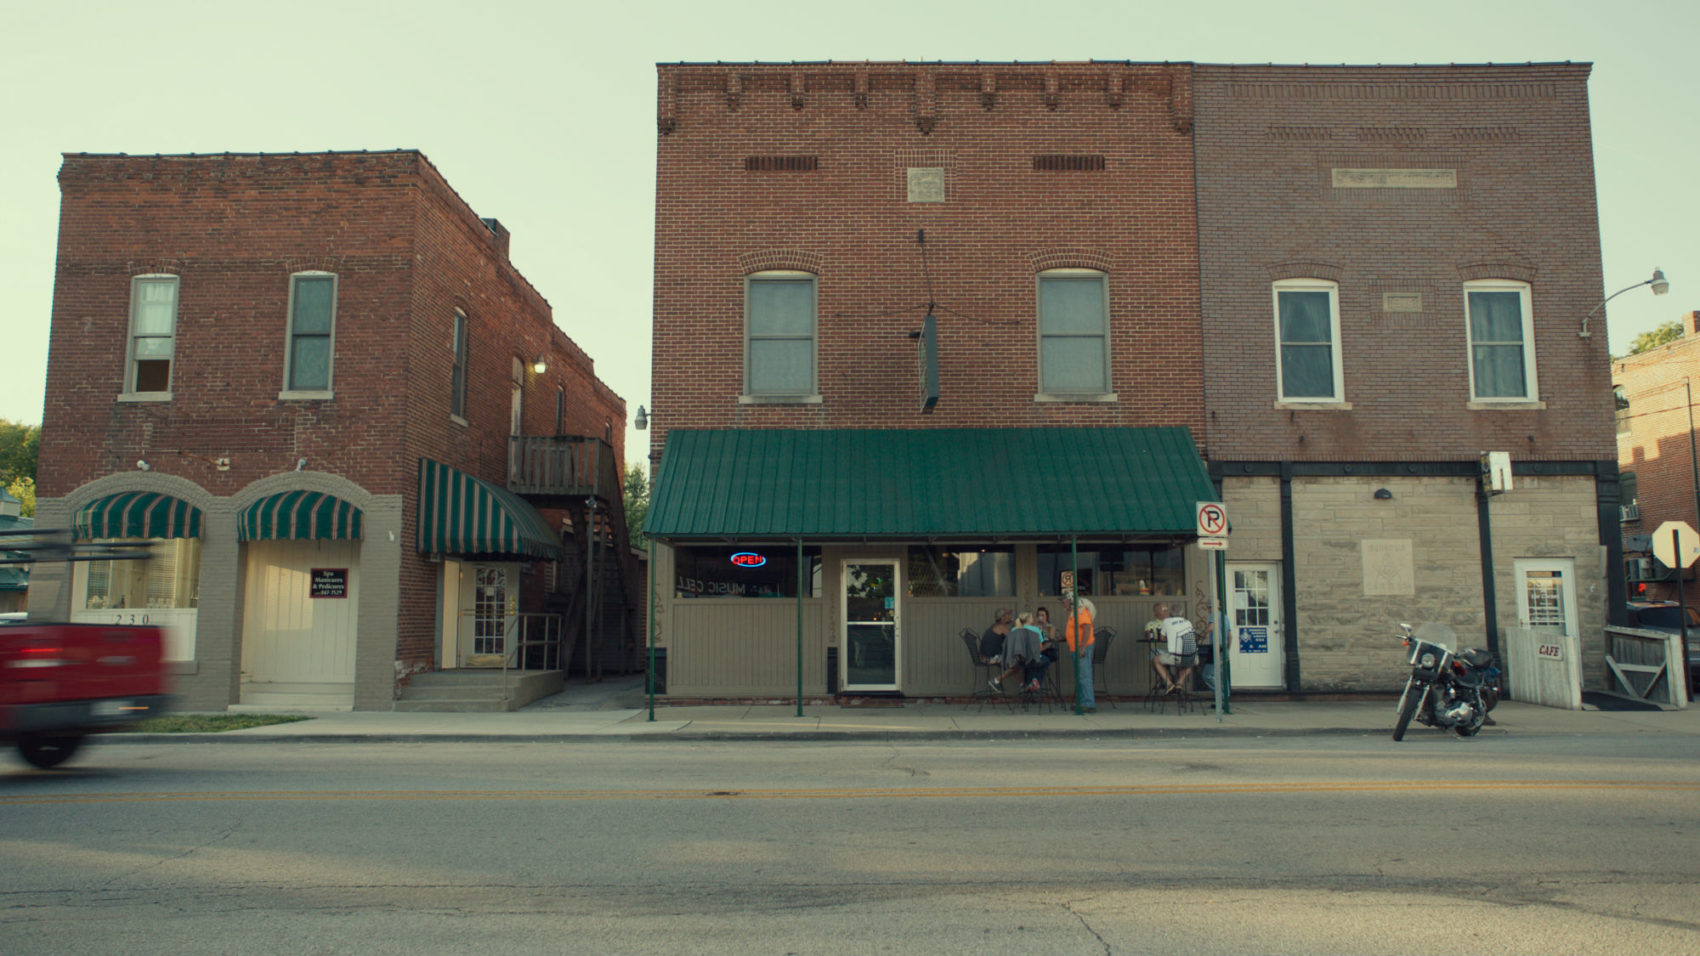 A storefront on Main Street in Monrovia, Indiana. (Courtesy Zipporah Films)